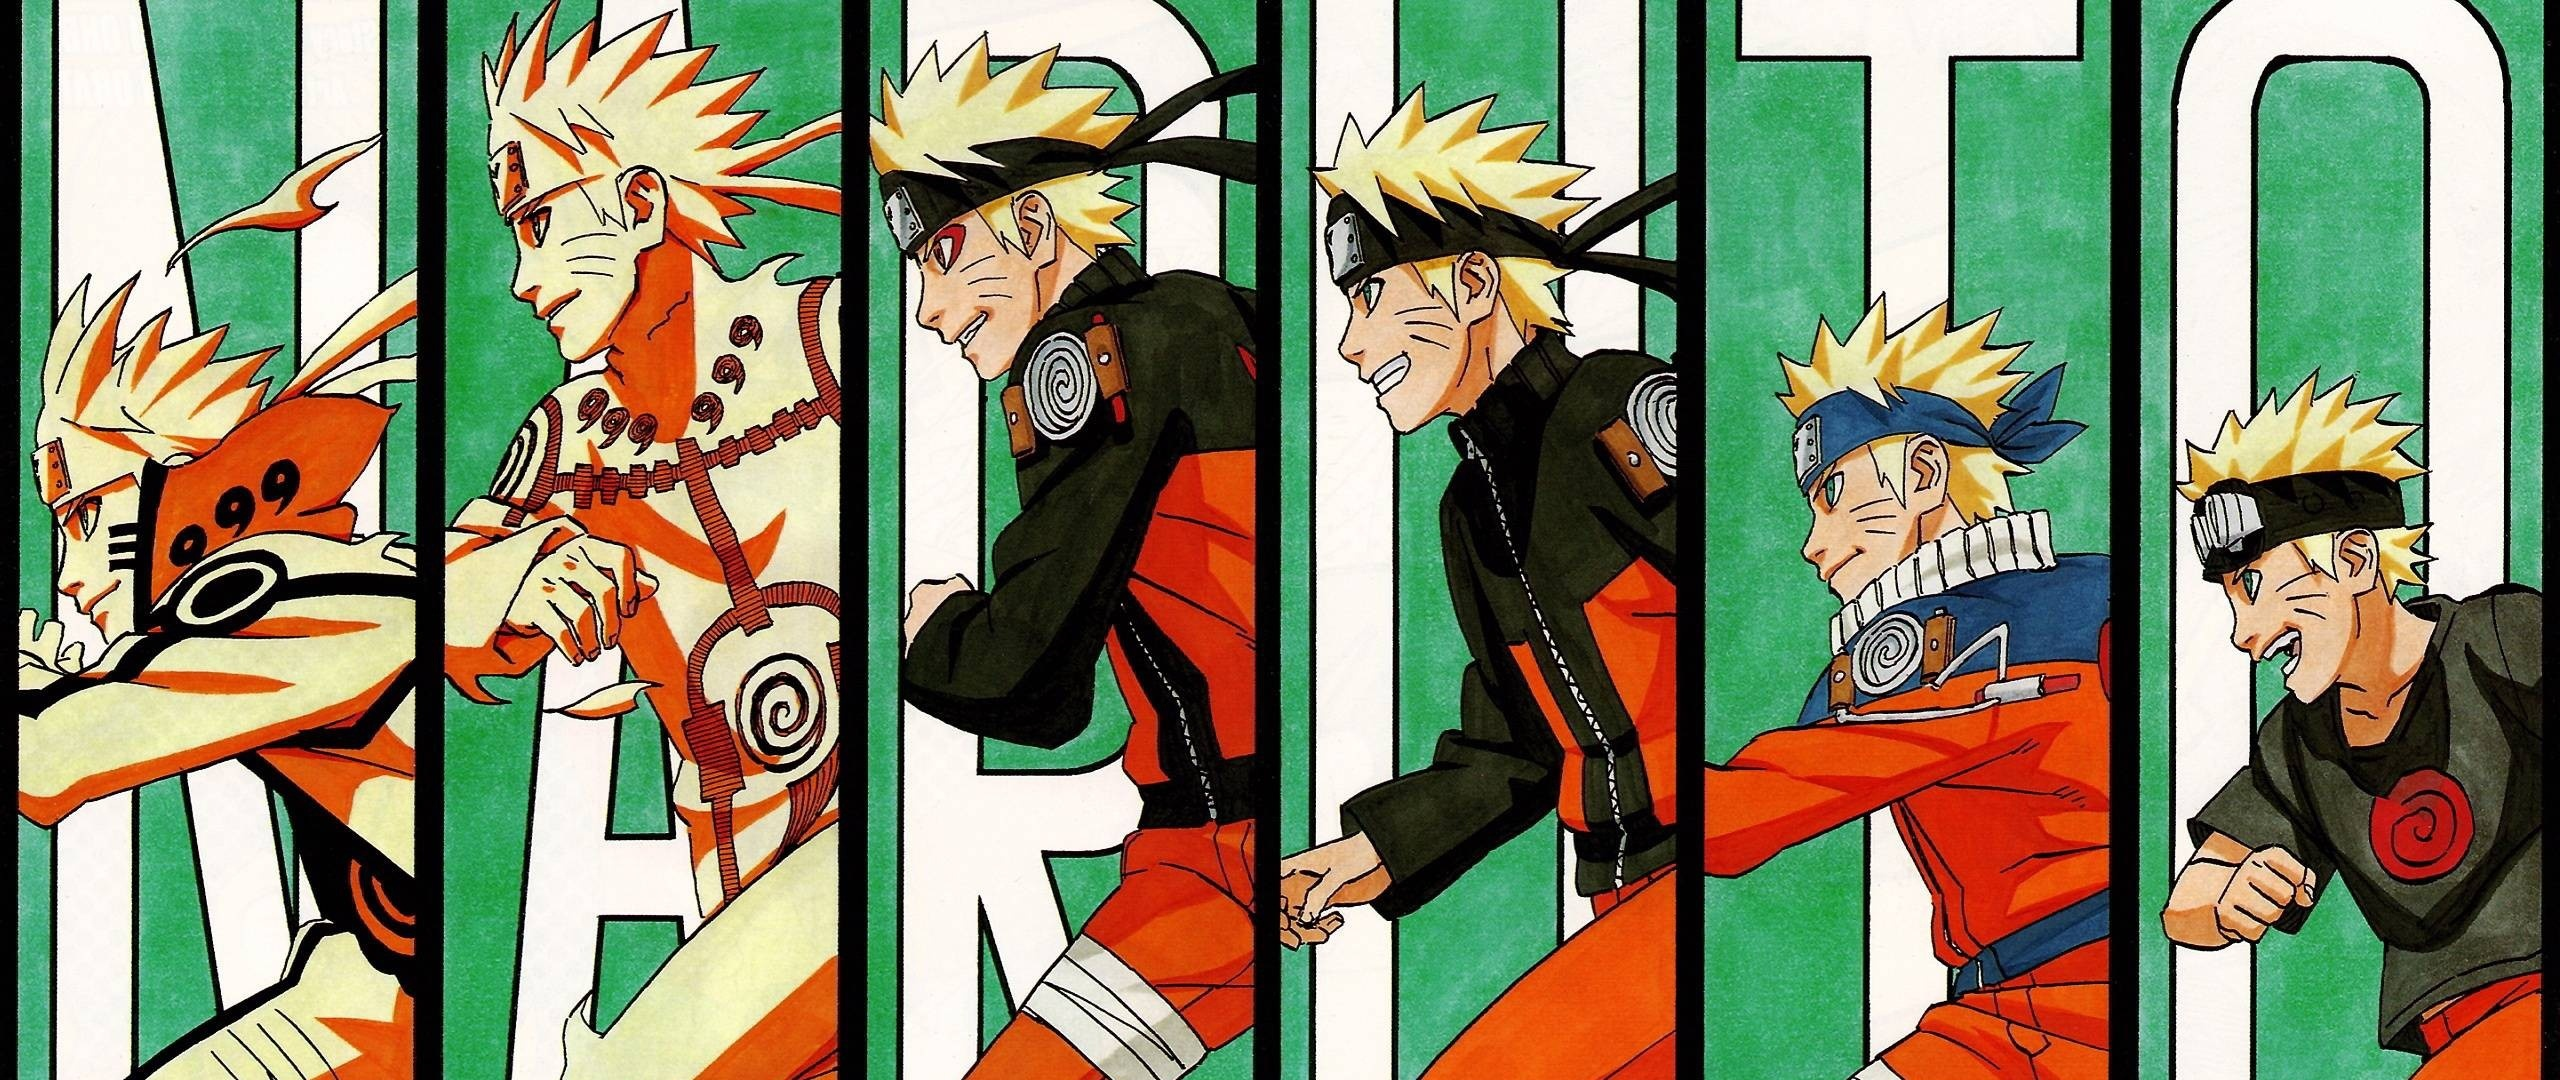 How Would Naruto Stack Up Against Dragon Ball Characters Like